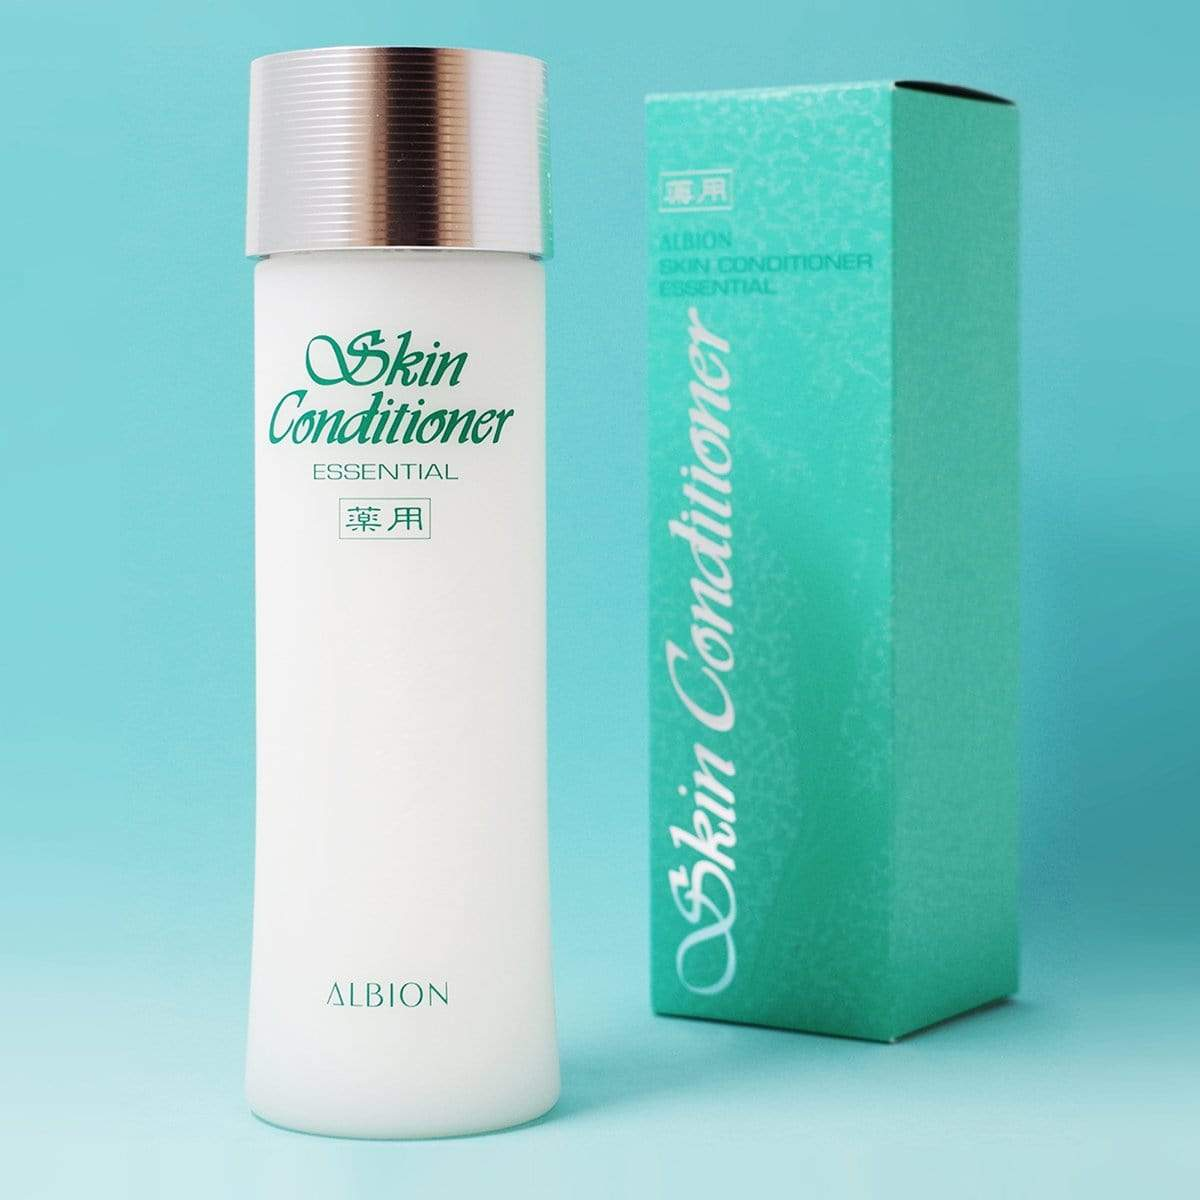 ALBION Essential Skin Conditioner